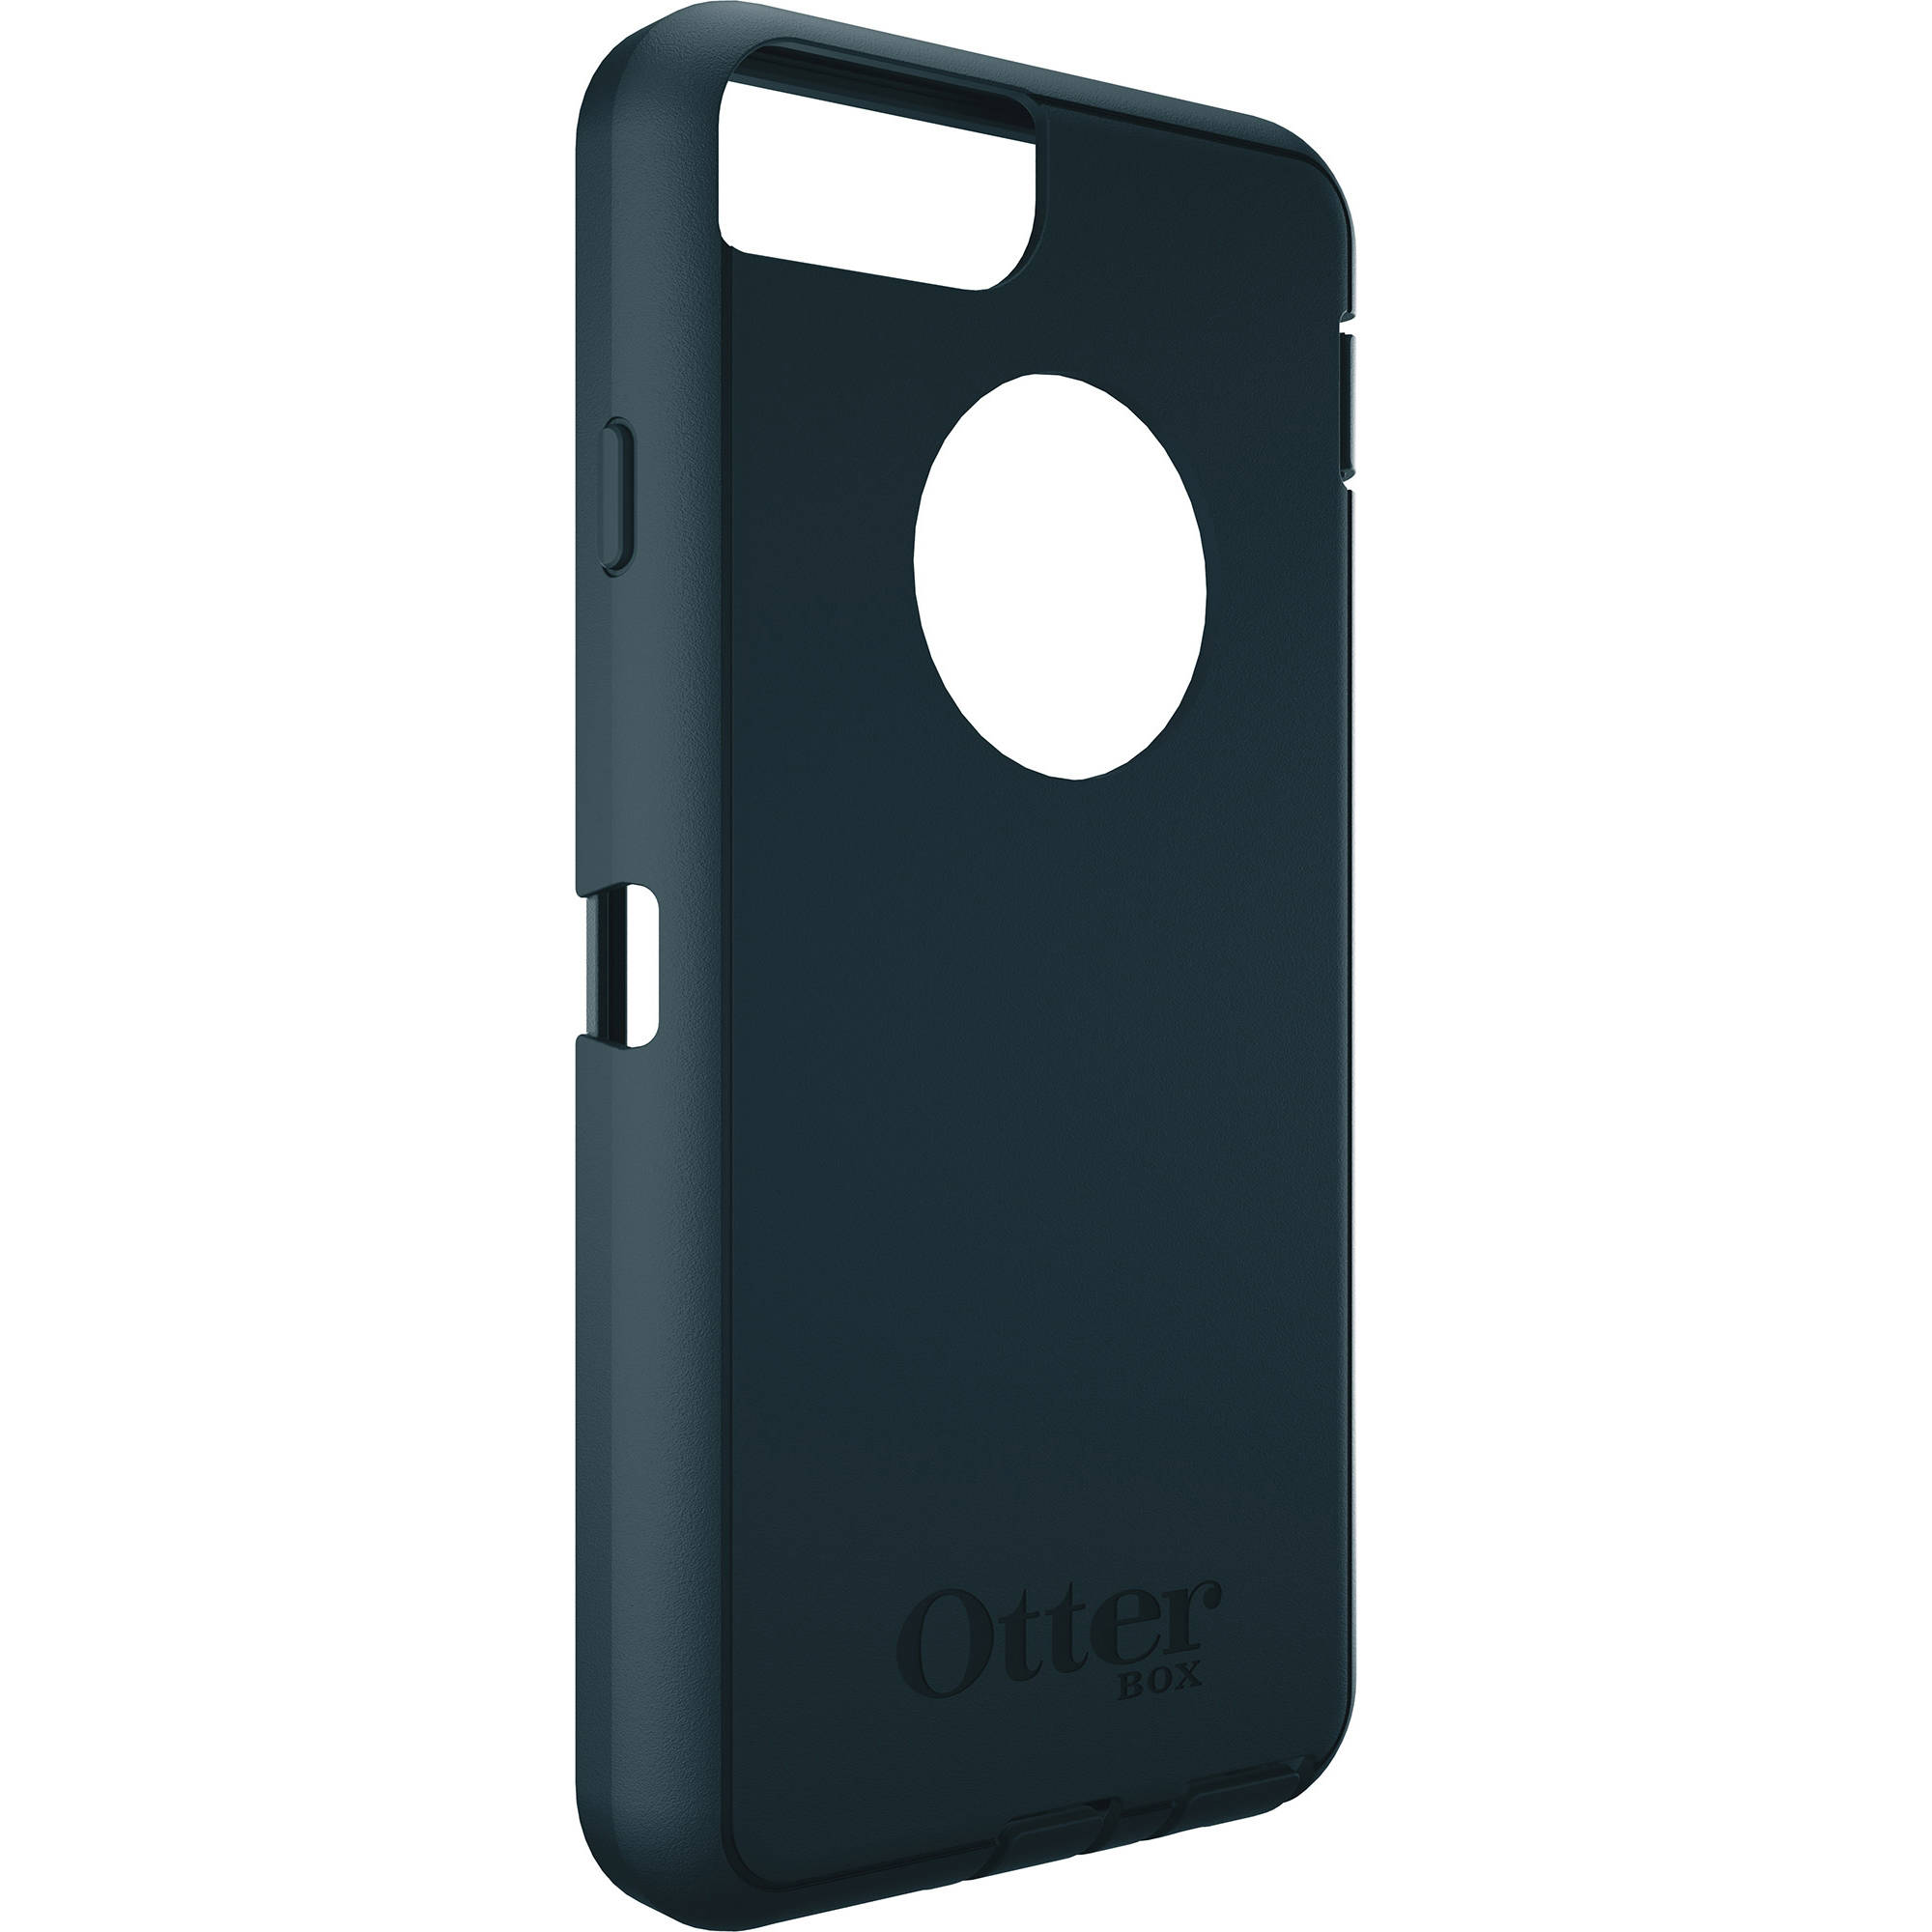 walmart otterbox iphone 6 otterbox defender series slipcover for apple iphone 6 6s 16446